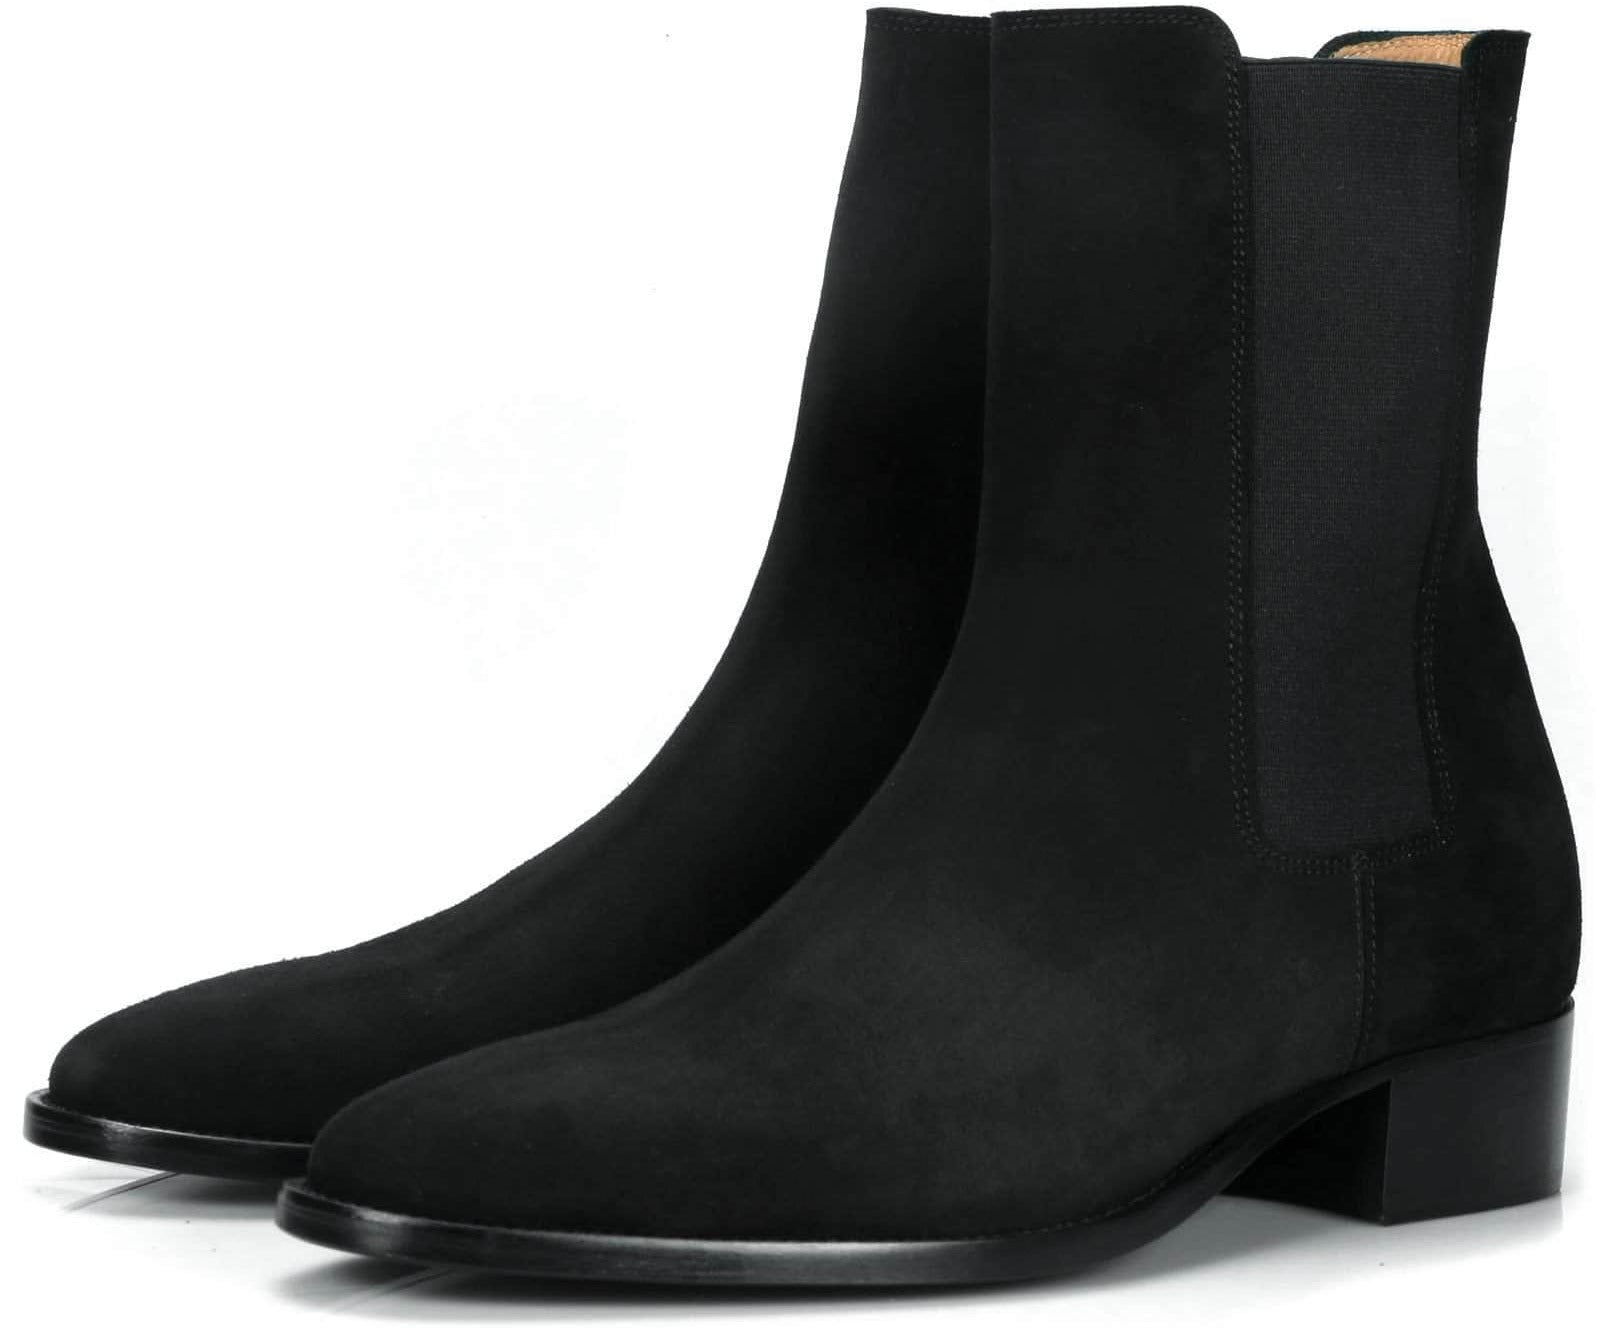 Mens Boots - Fleetwood Chelsea Boot - Black Suede